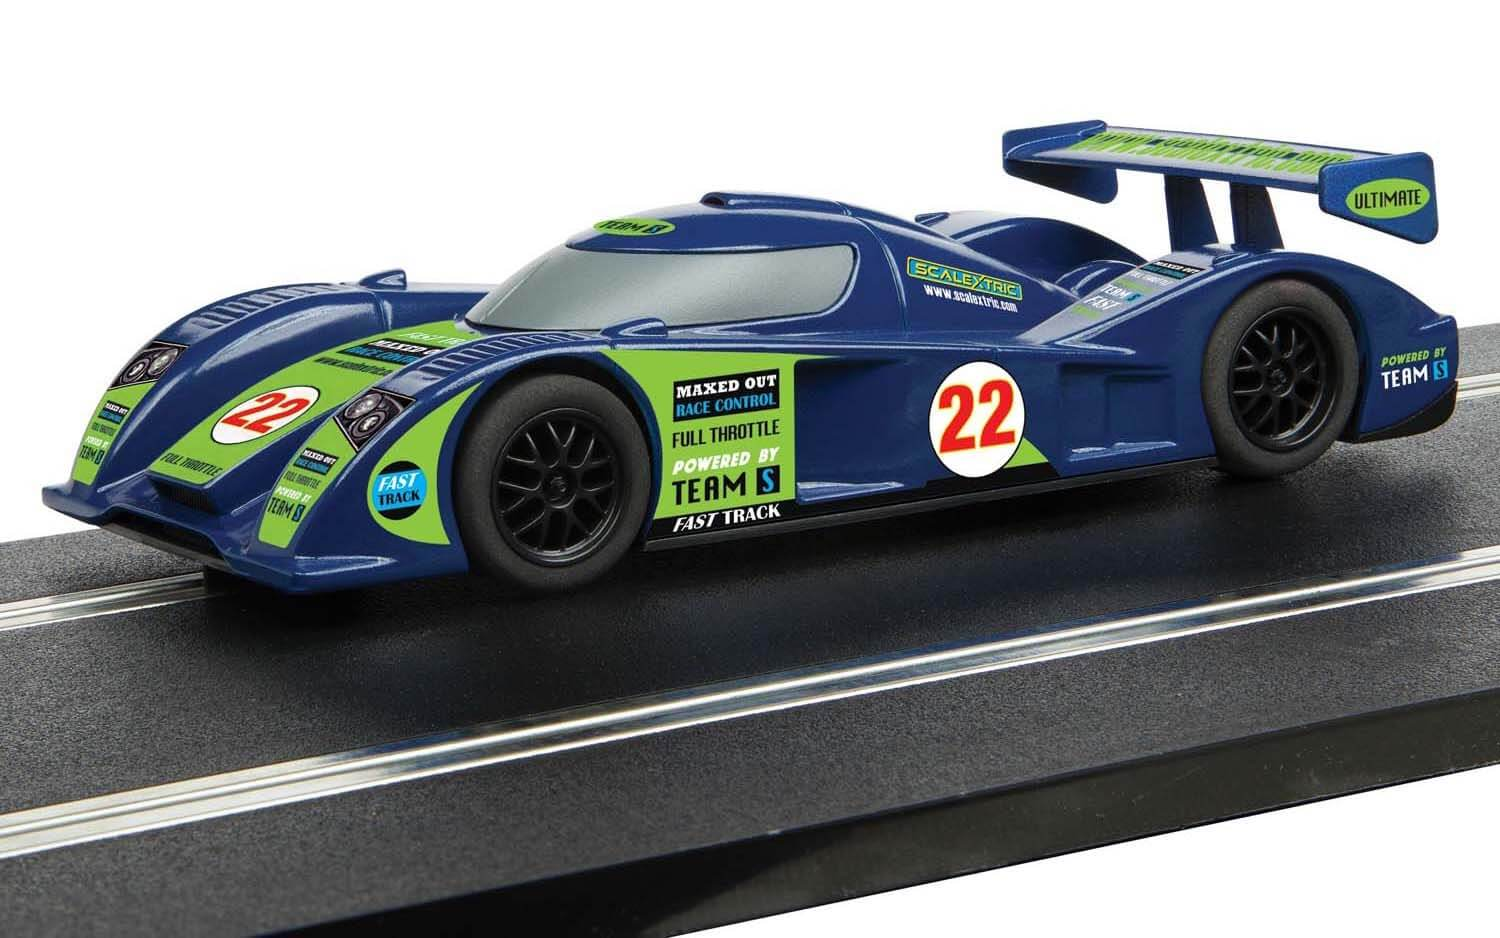 C4111 Scalextric Start Endurance Car - 'Maxed Out Race Control'